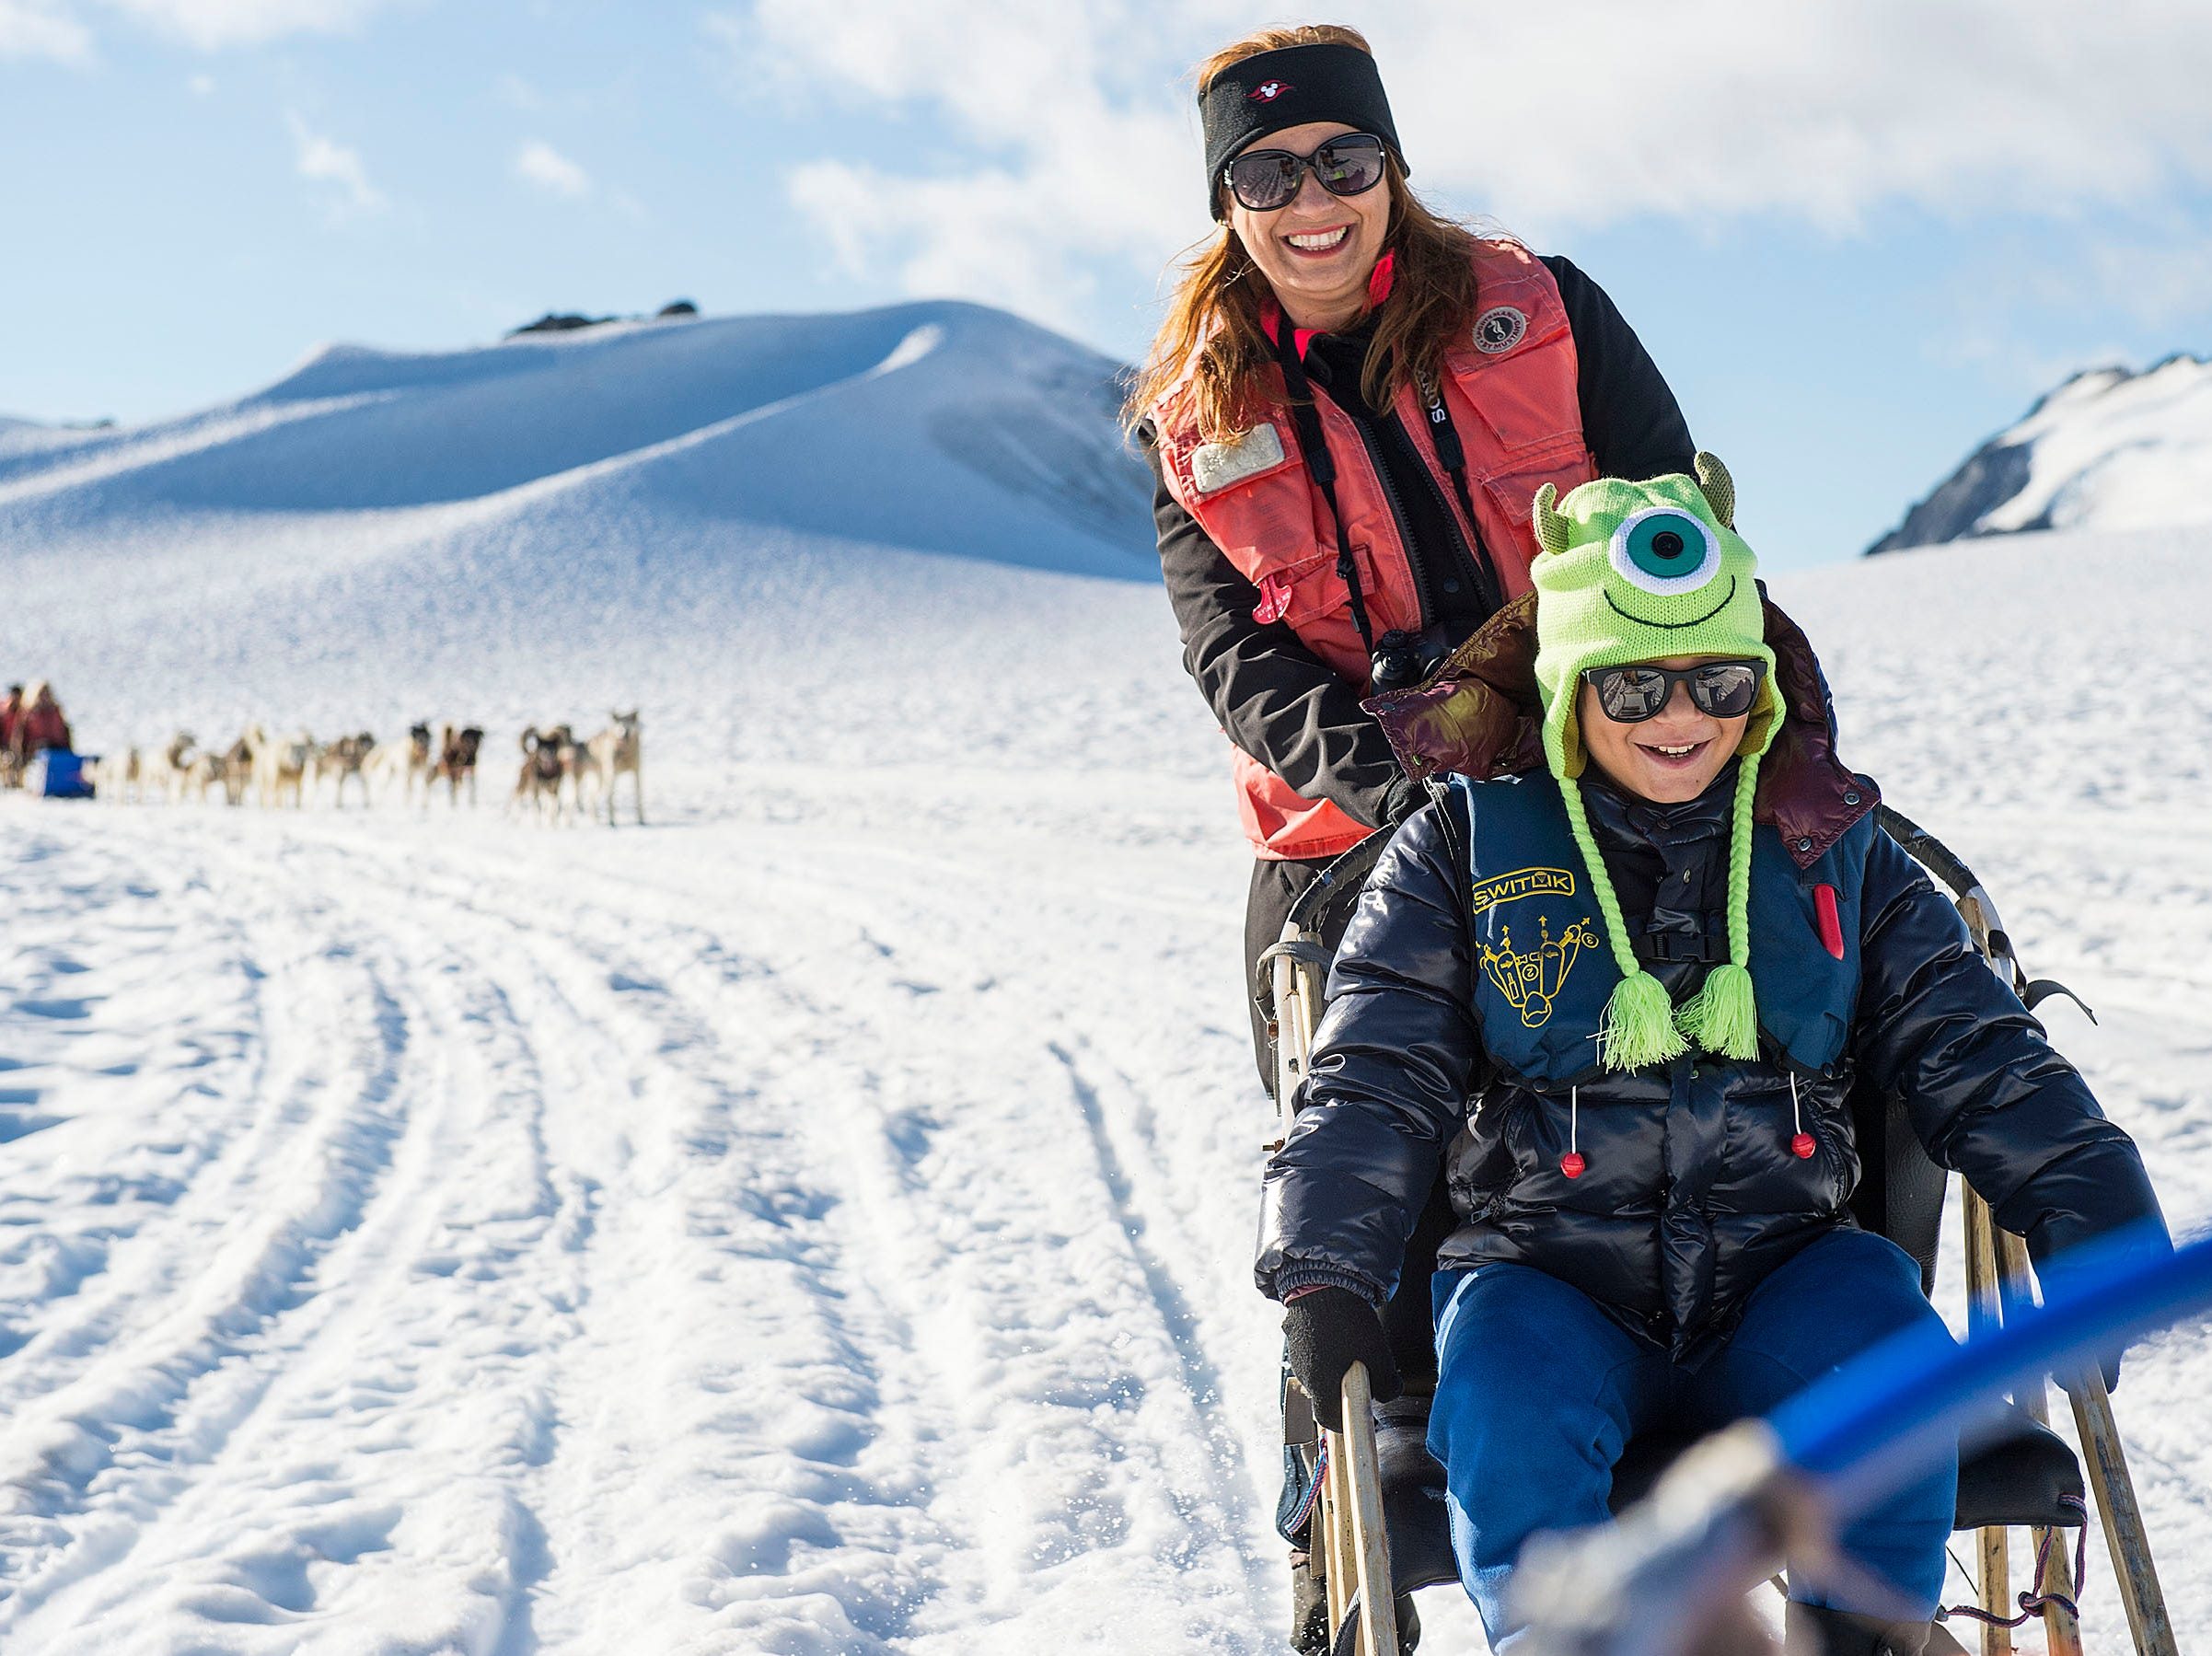 As part of the Alaska itinerary, Disney Cruise Line guests explore Musher's Camp at the Klondike Gold Rush National Historic Park in Skagway. Guests meet the mushers and sled dogs and are whisked on a thrilling ride through Alaska's temperate rainforest by the husky team.